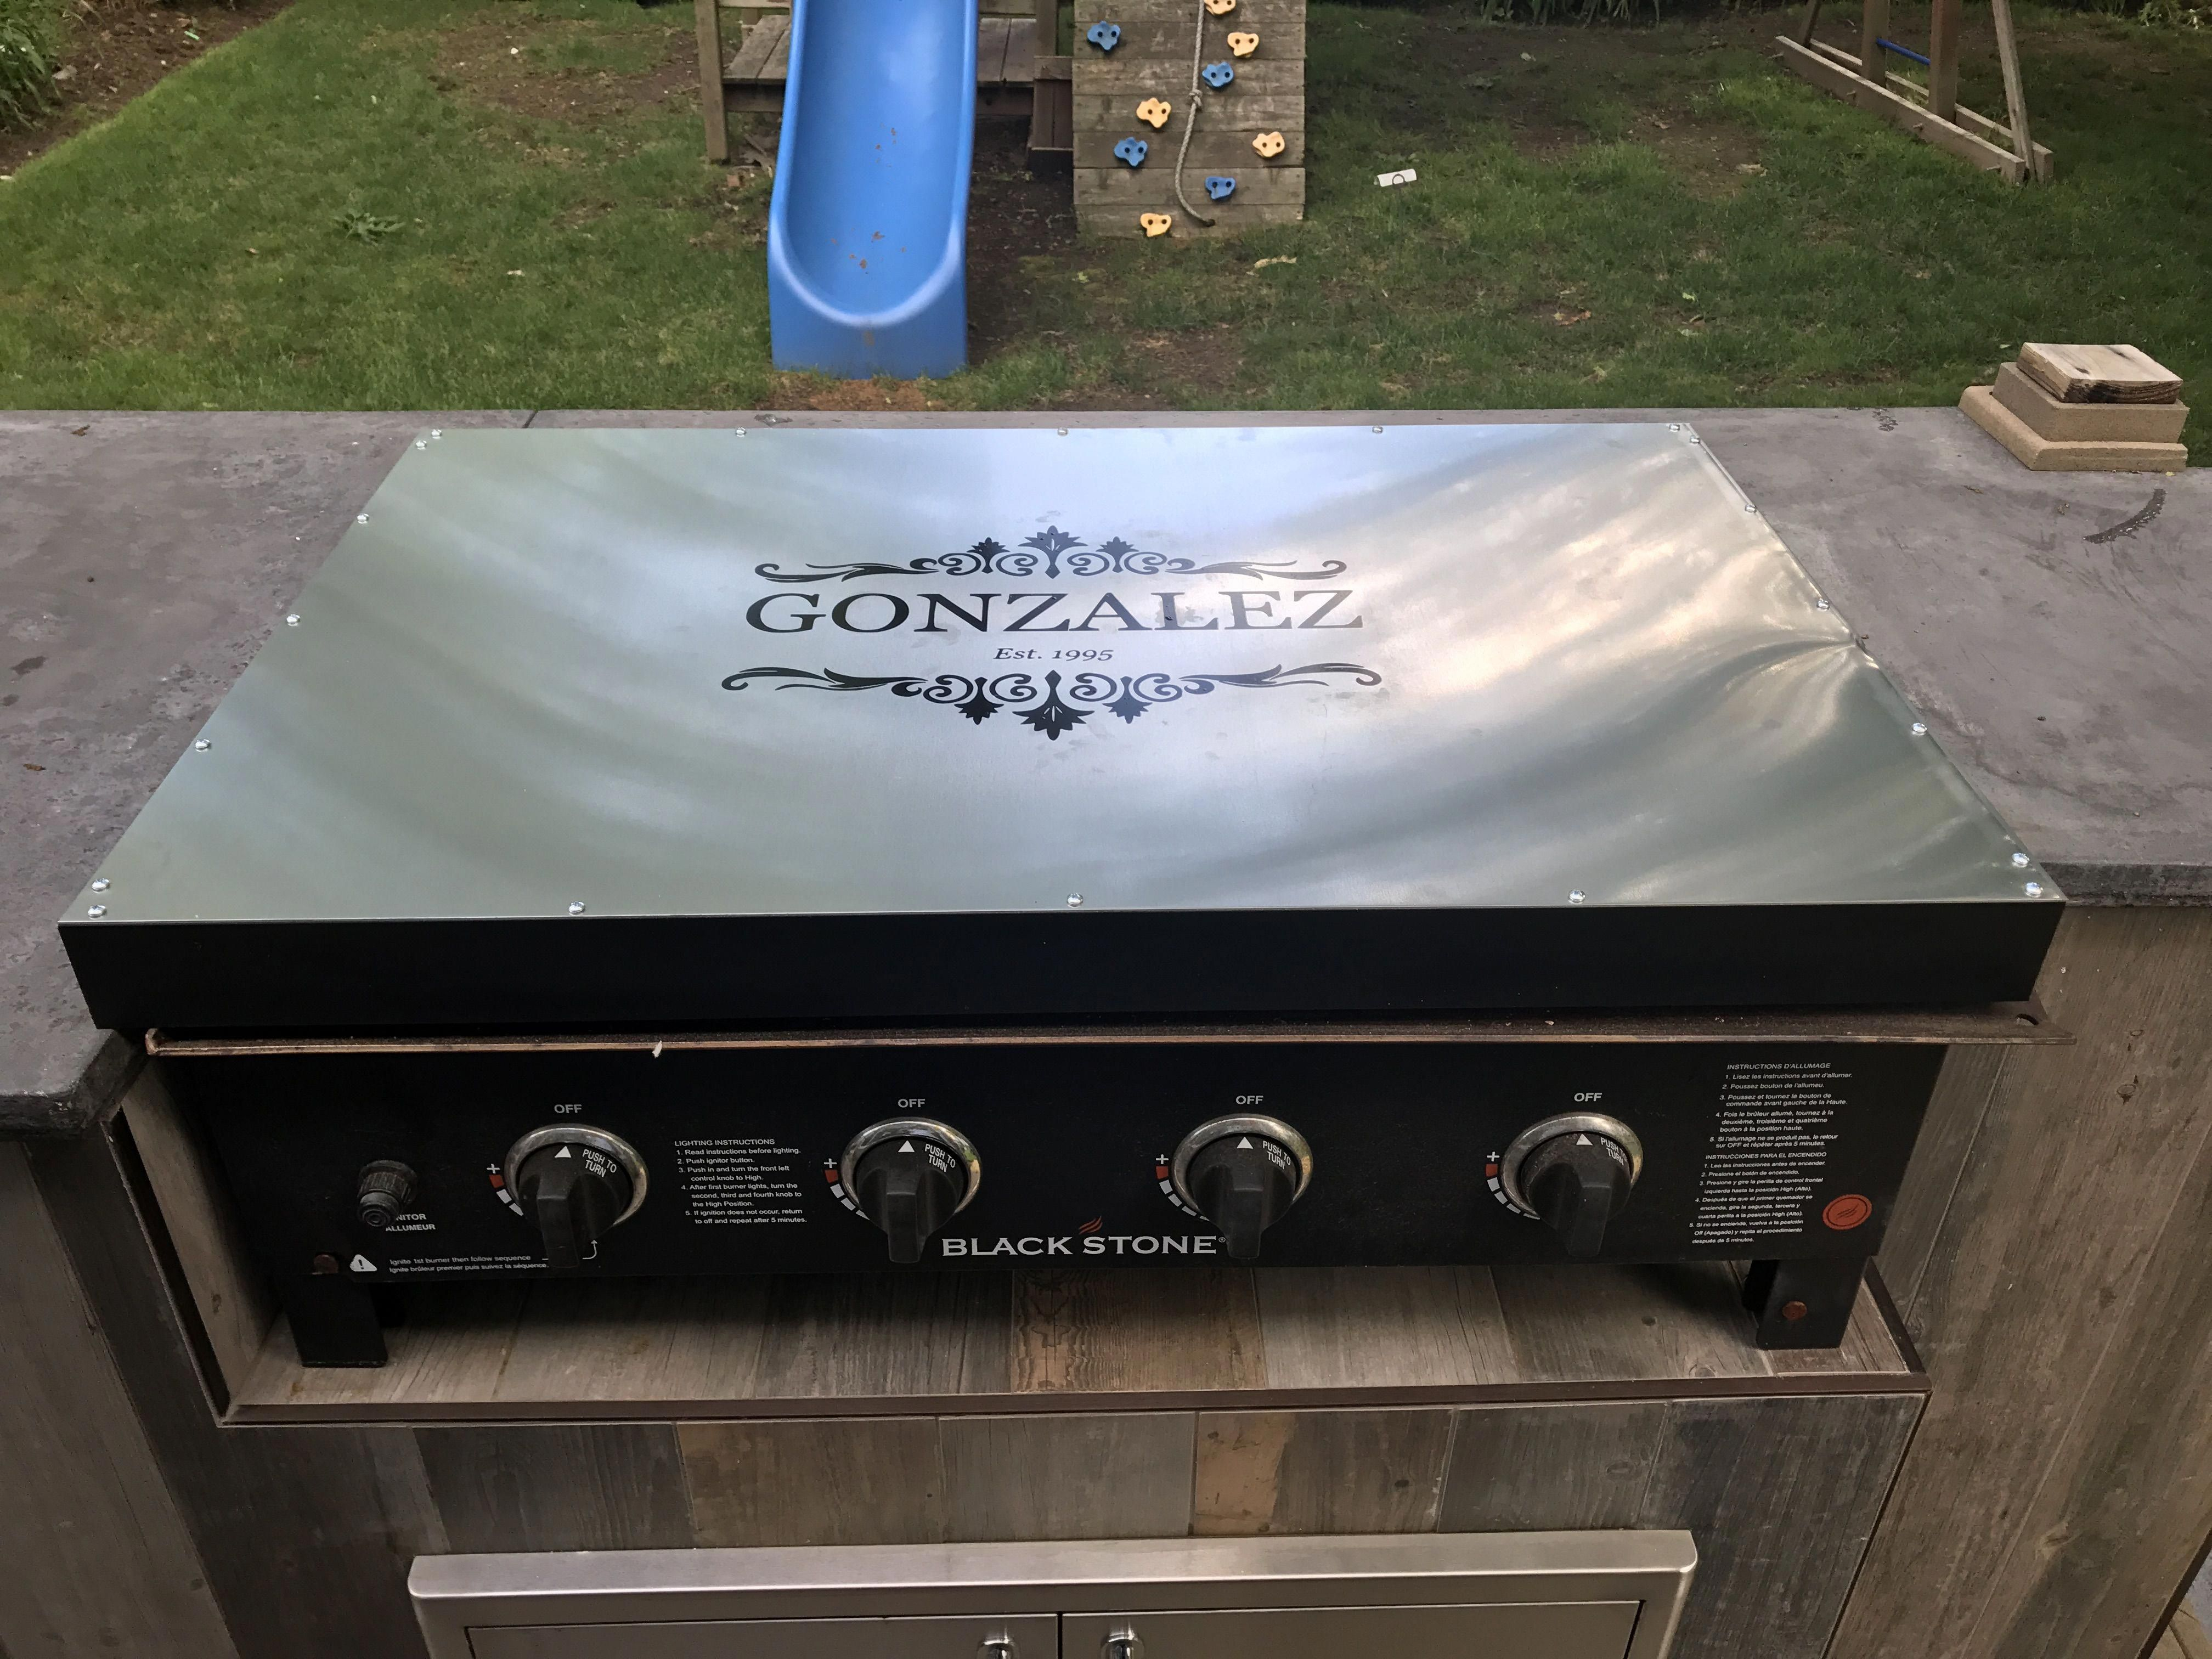 Stove Top Cover For Blackstone Griddle Made Out Of Aluminium Sheet For The Top With A Vinyl Decal And Com Outdoor Bbq Kitchen Outdoor Bbq Backyard Diy Projects